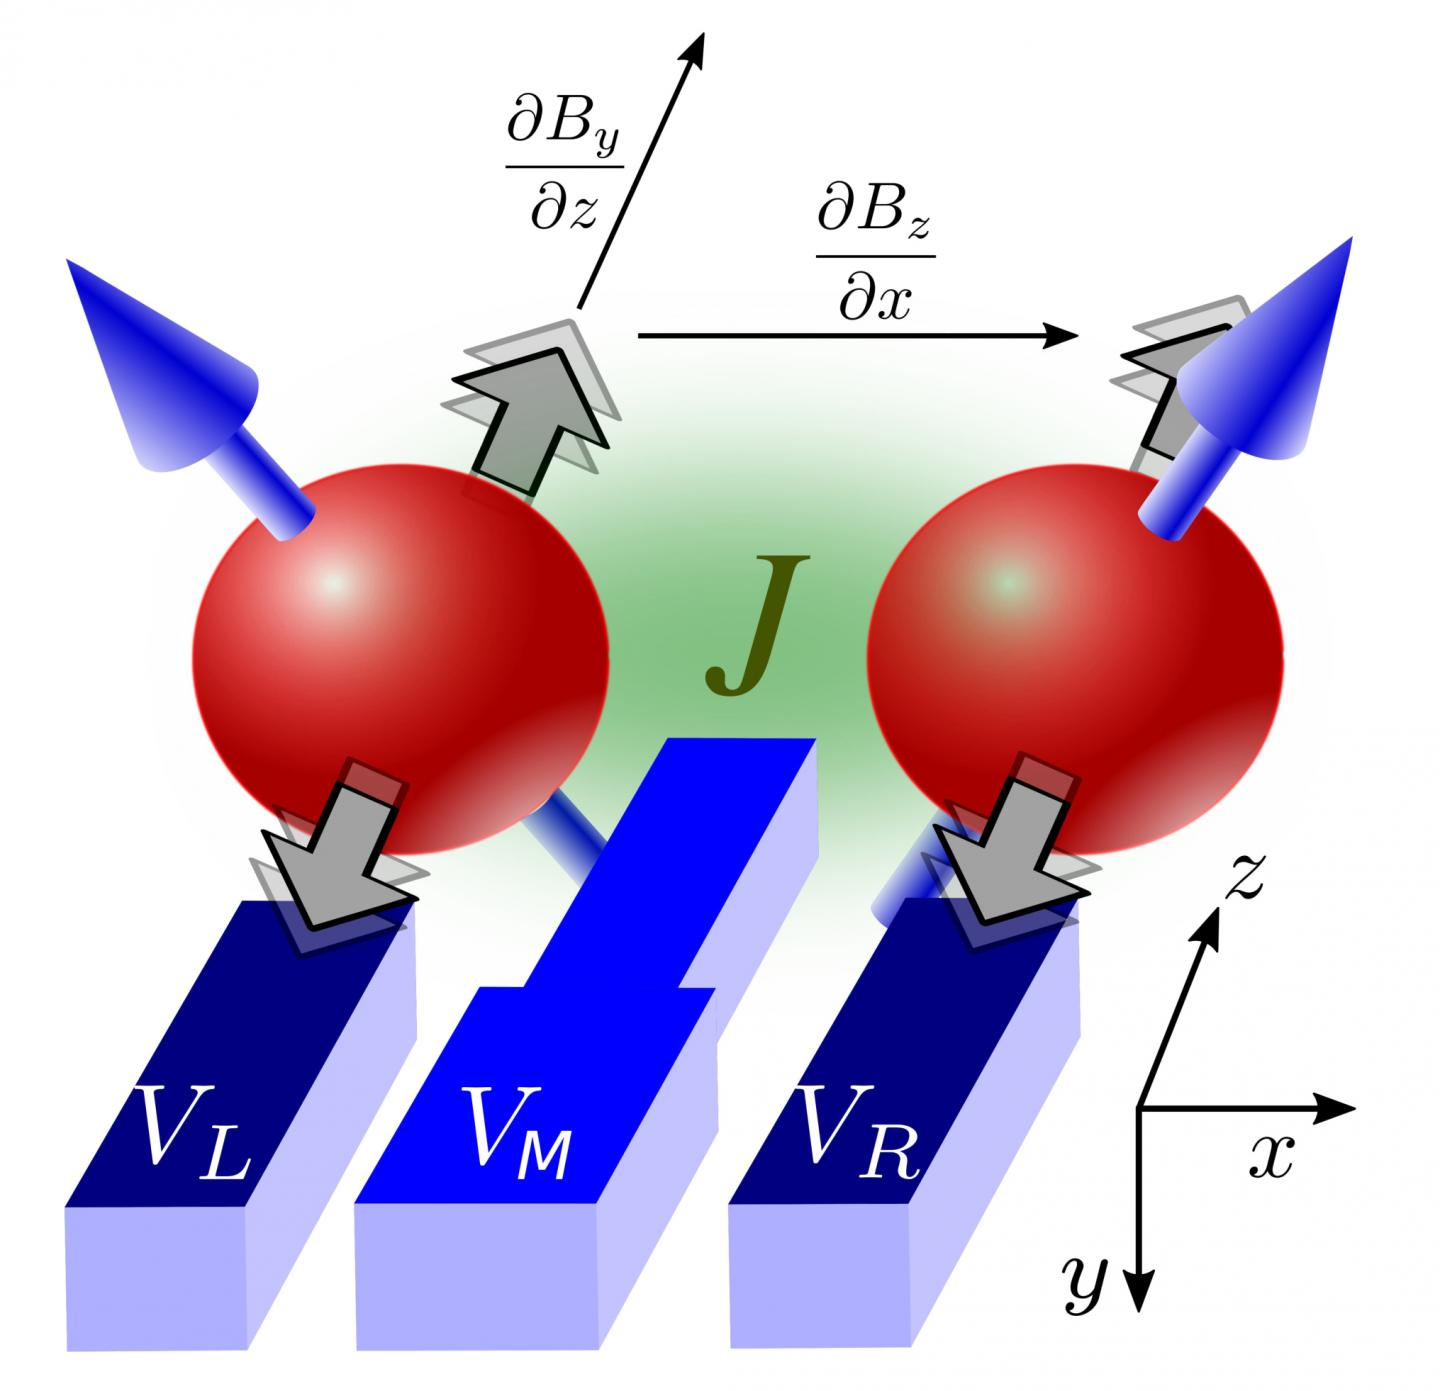 These are the quantum gates of two silicon electrons. Two nano-electrodes (VL and VR) control the angular momentum of both electrons. A third nano-electrode (VM) coordinates the interaction of both electrons.(University of Konstanz)